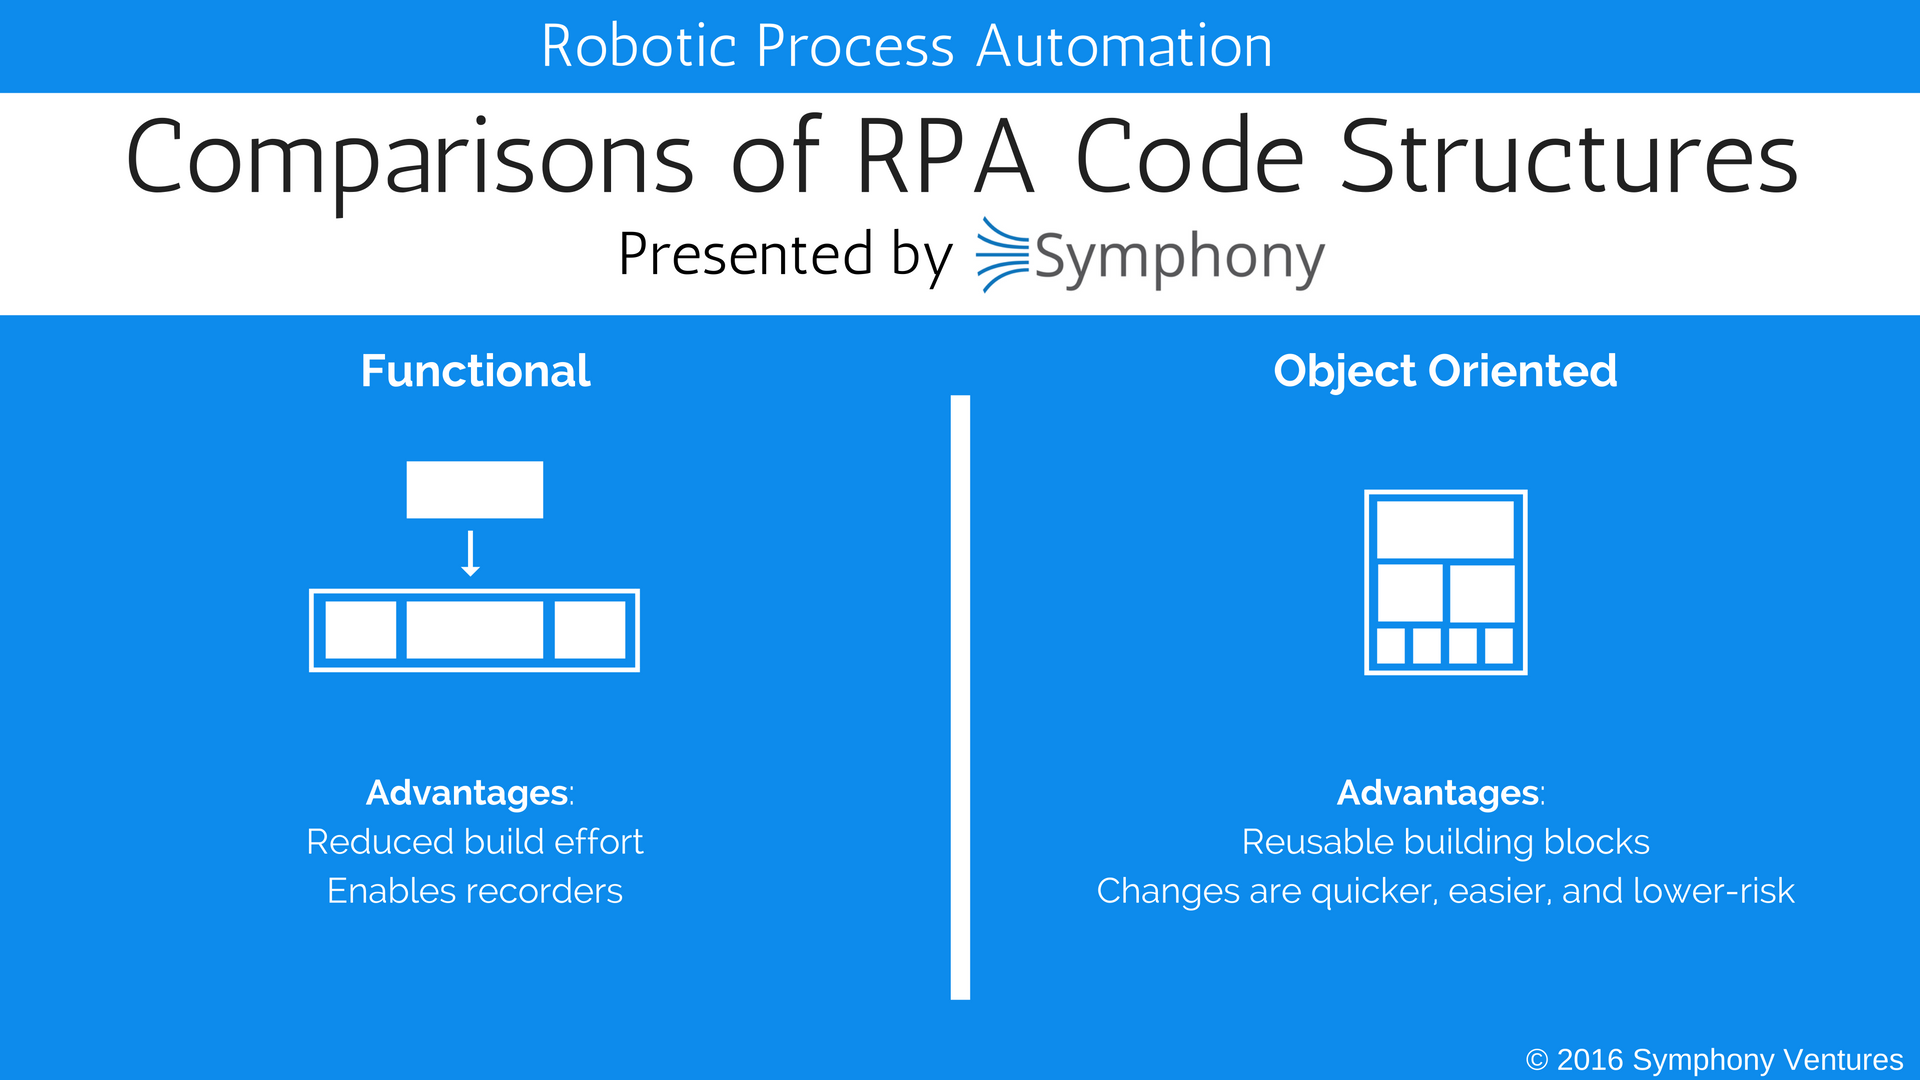 Symphony-RPA-Code-Structure-Infographic.png